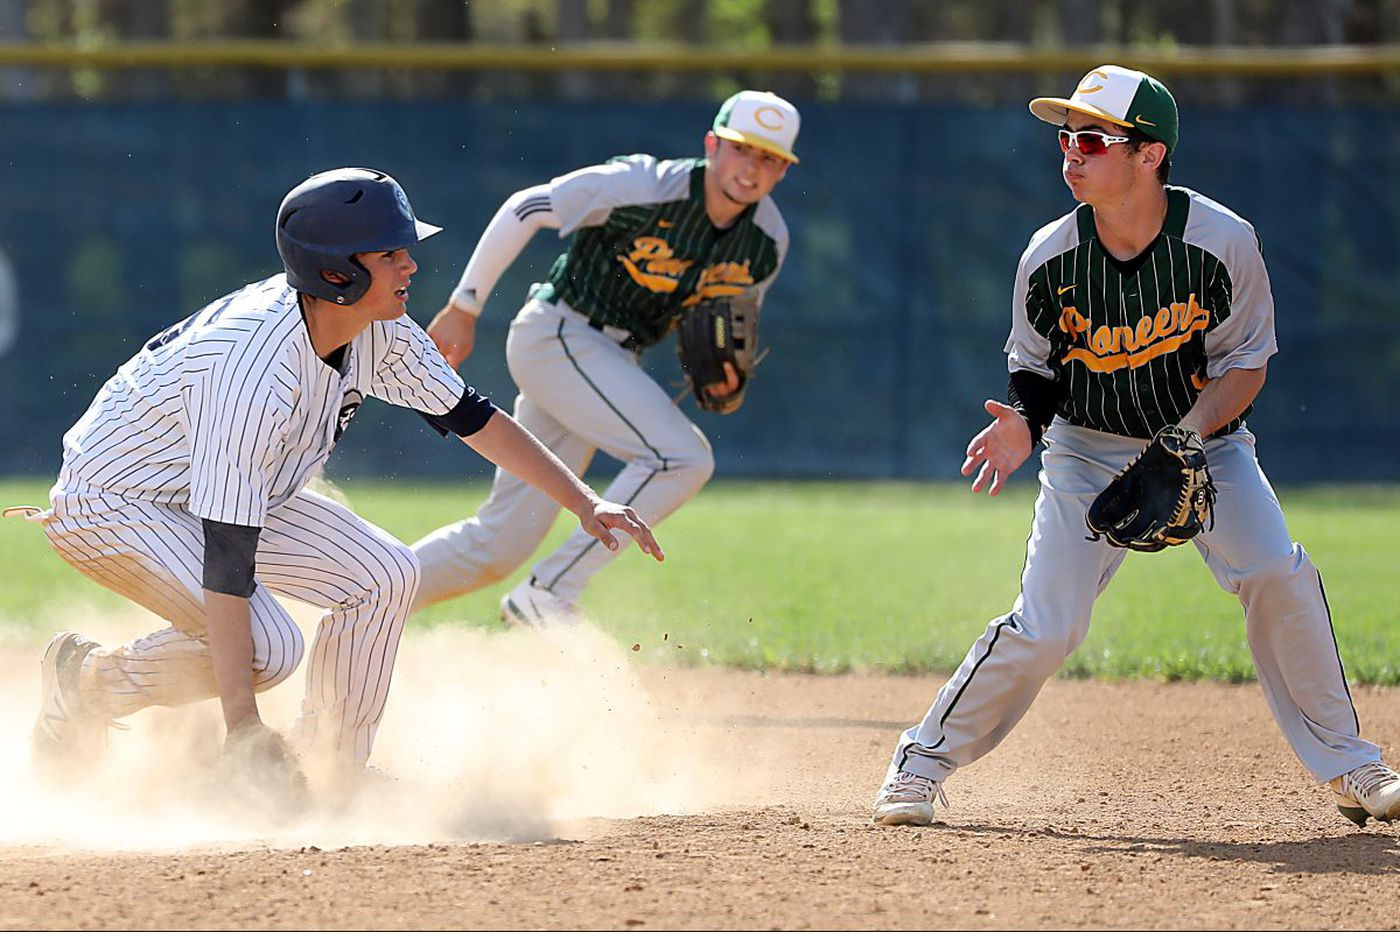 Nick Lonetto powers St. Augustine baseball past Clearview